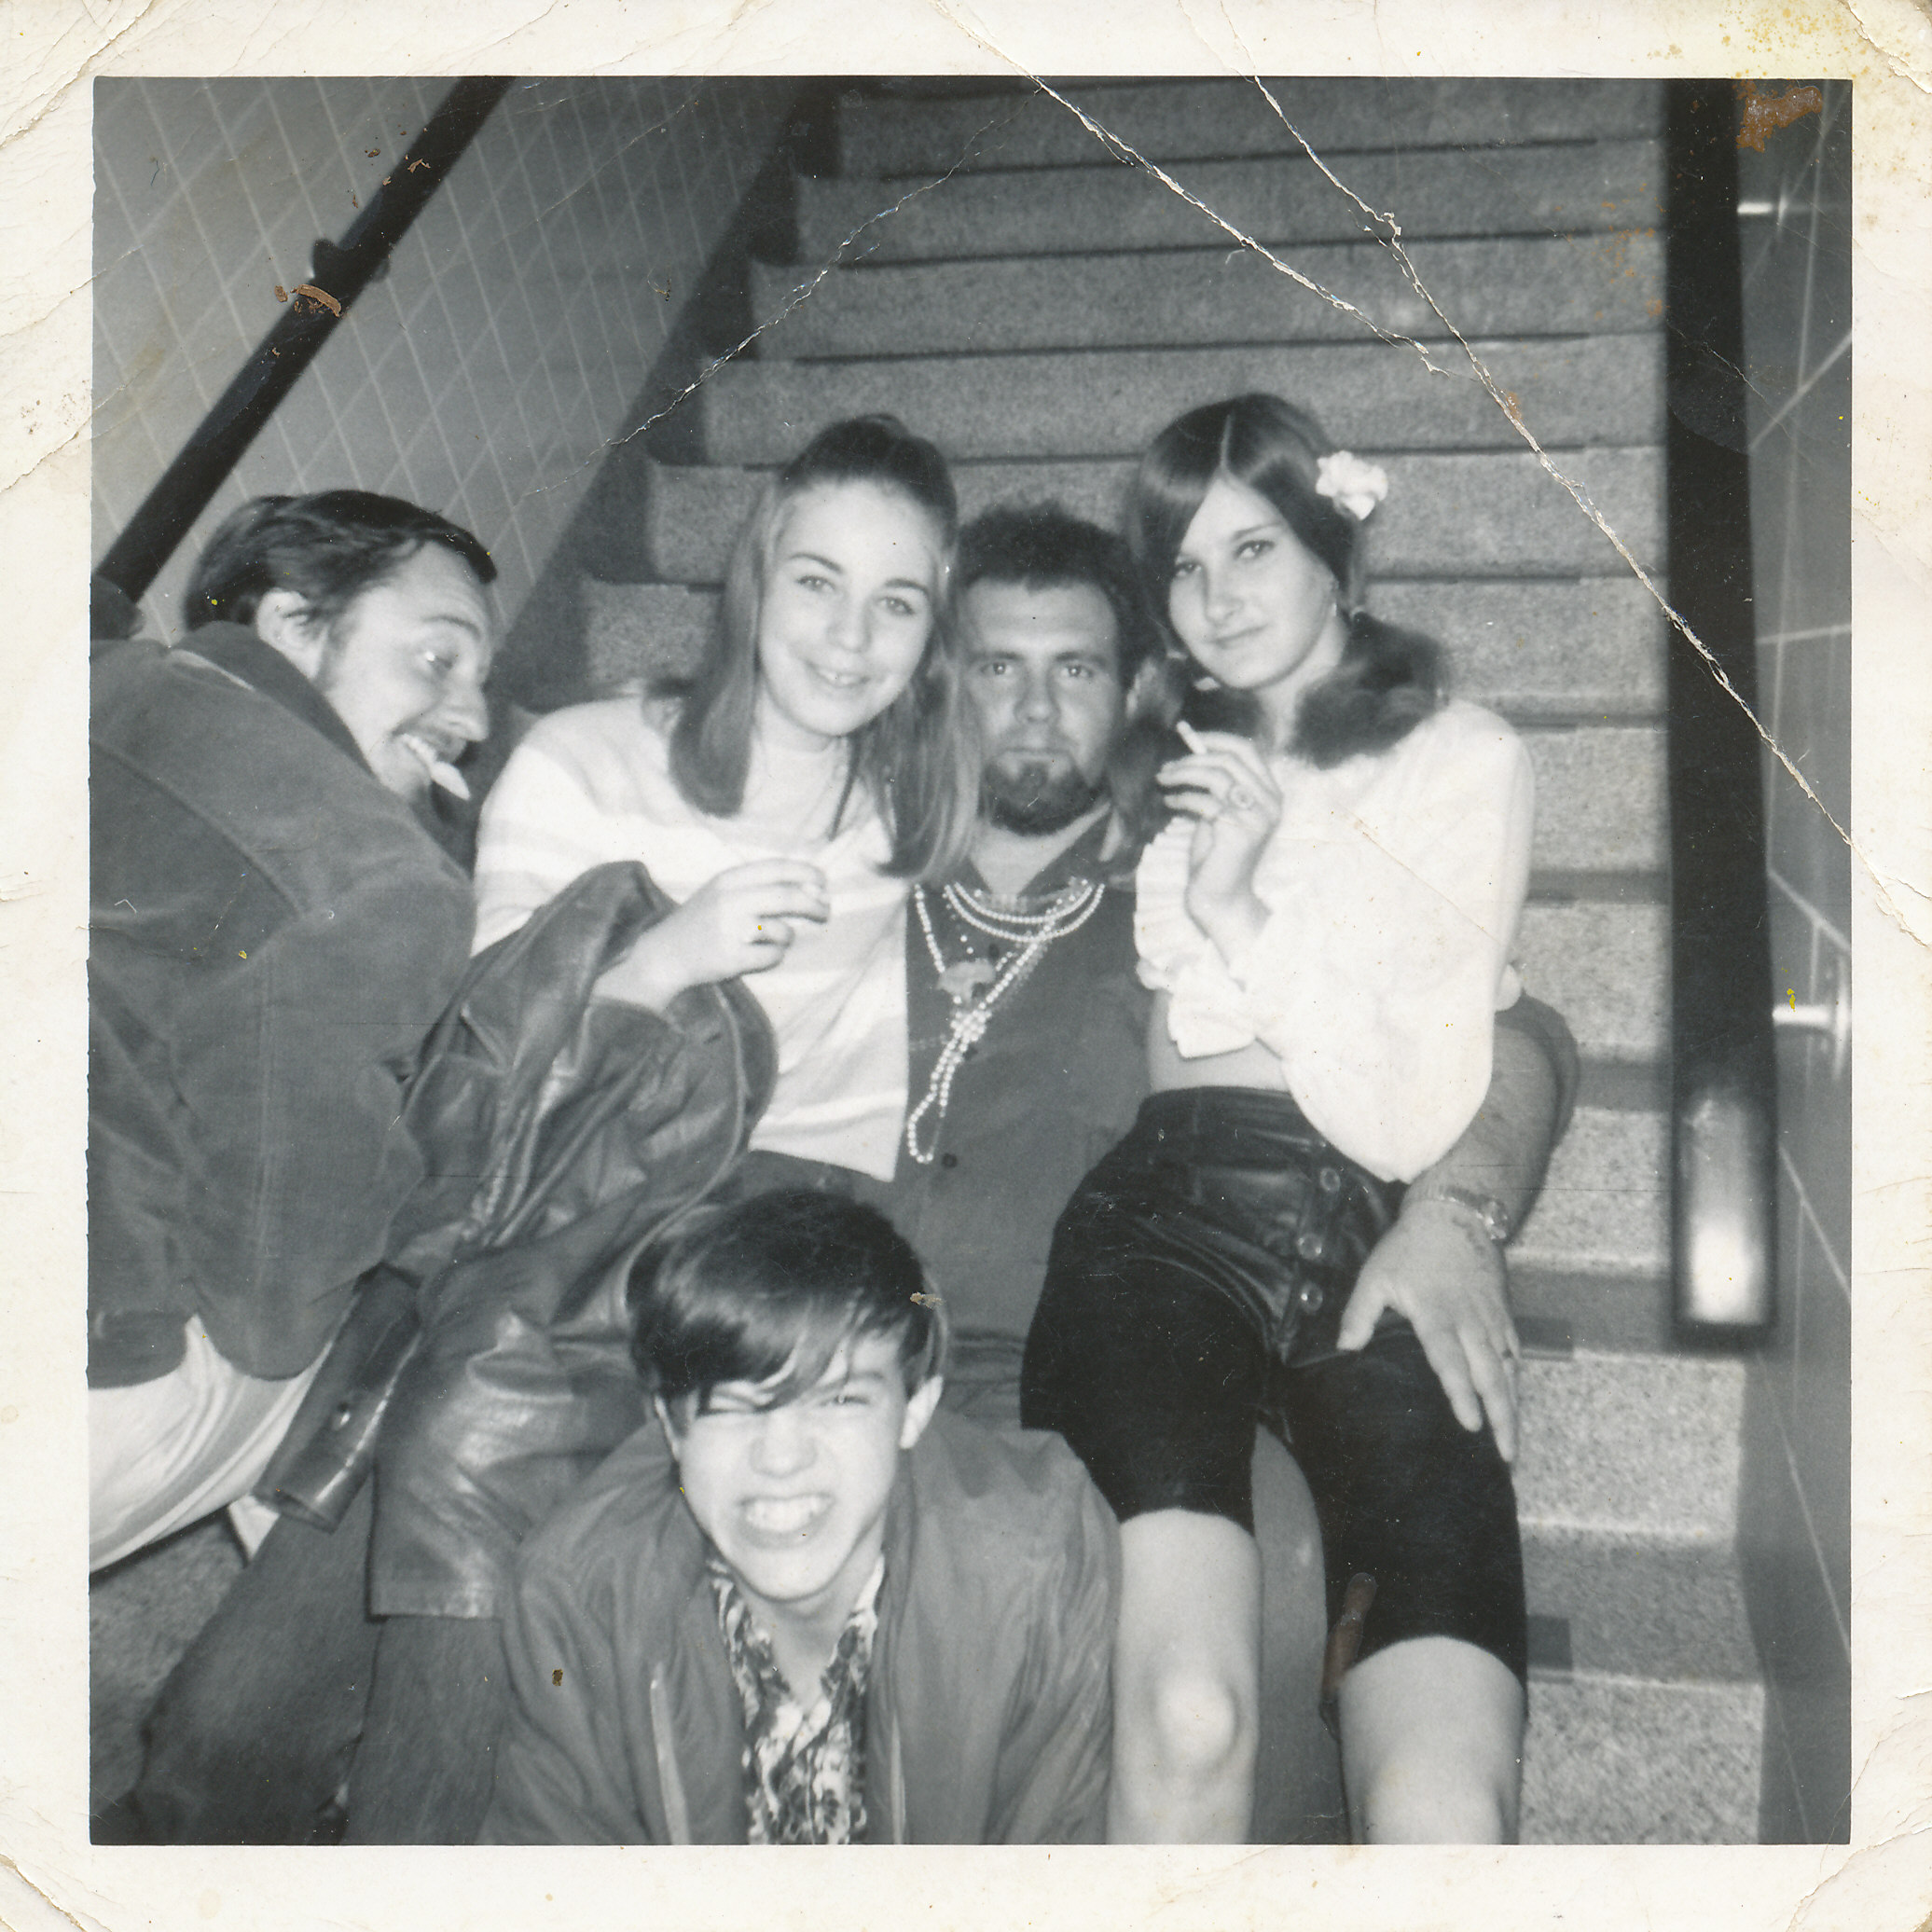 2 young girls, one young boy and 2 older young men sitting on stairs